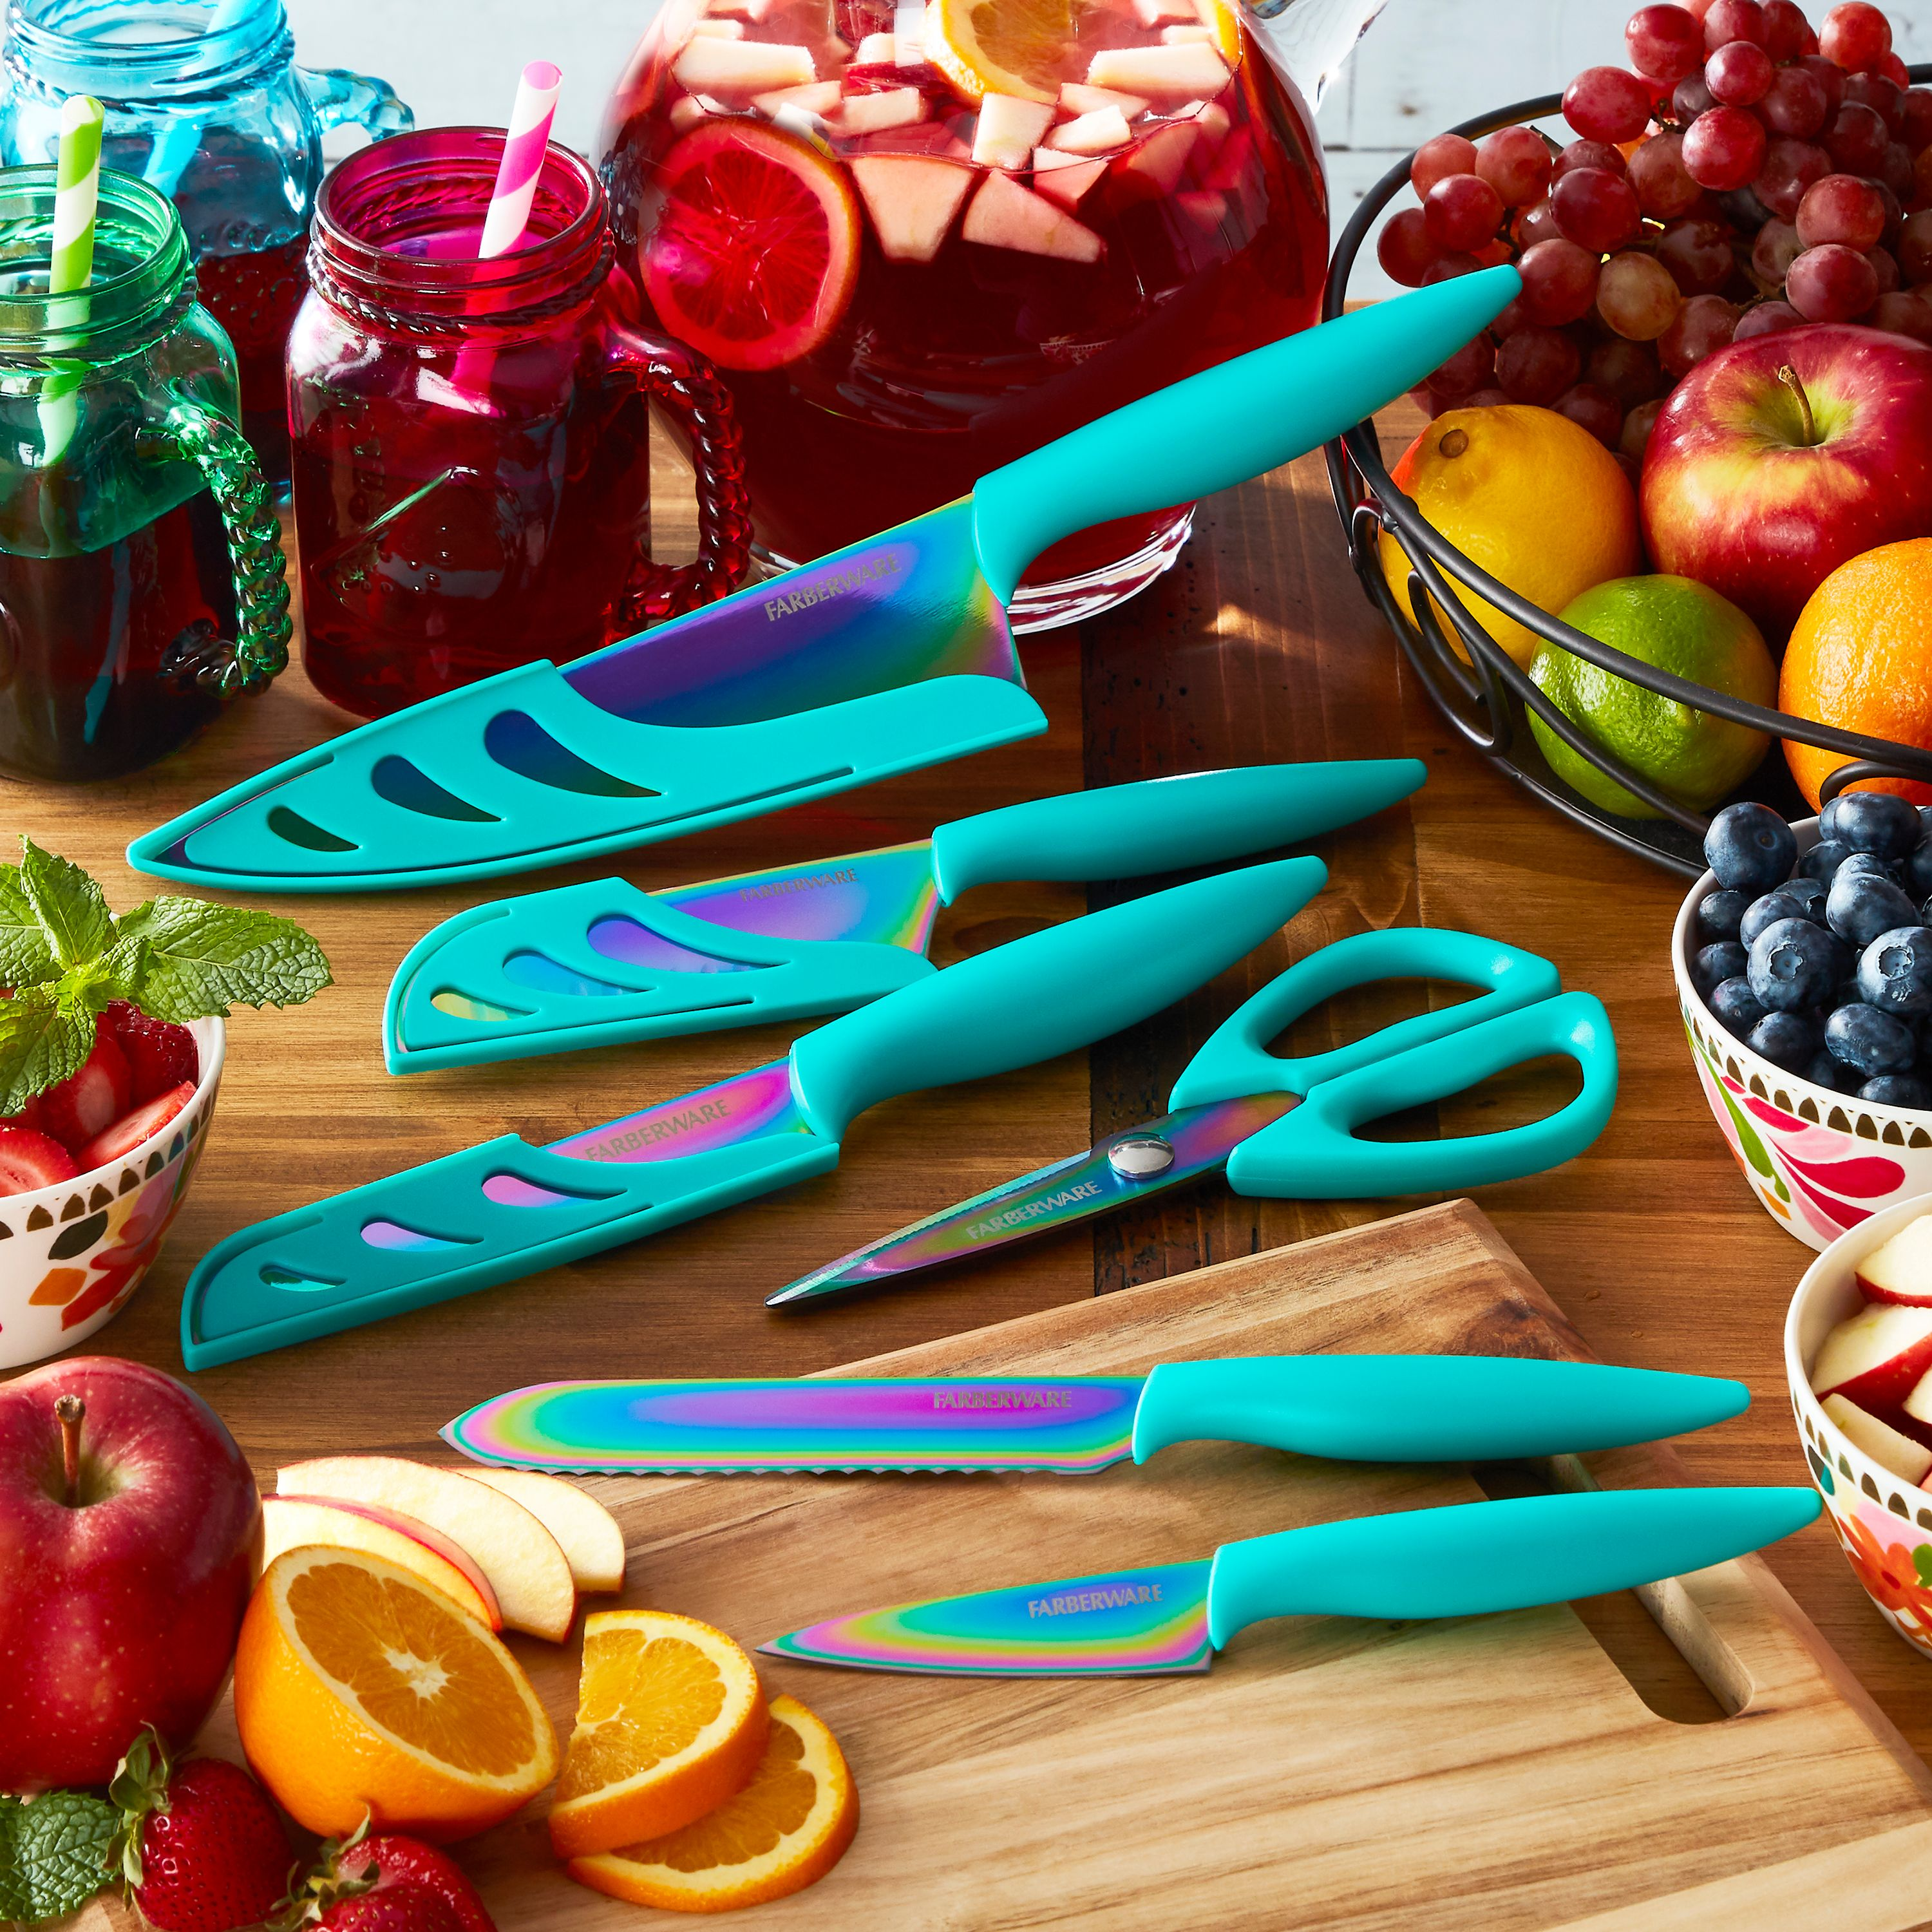 Farberware Colourworks 11-Piece Rainbow Titanium Teal Knife Set